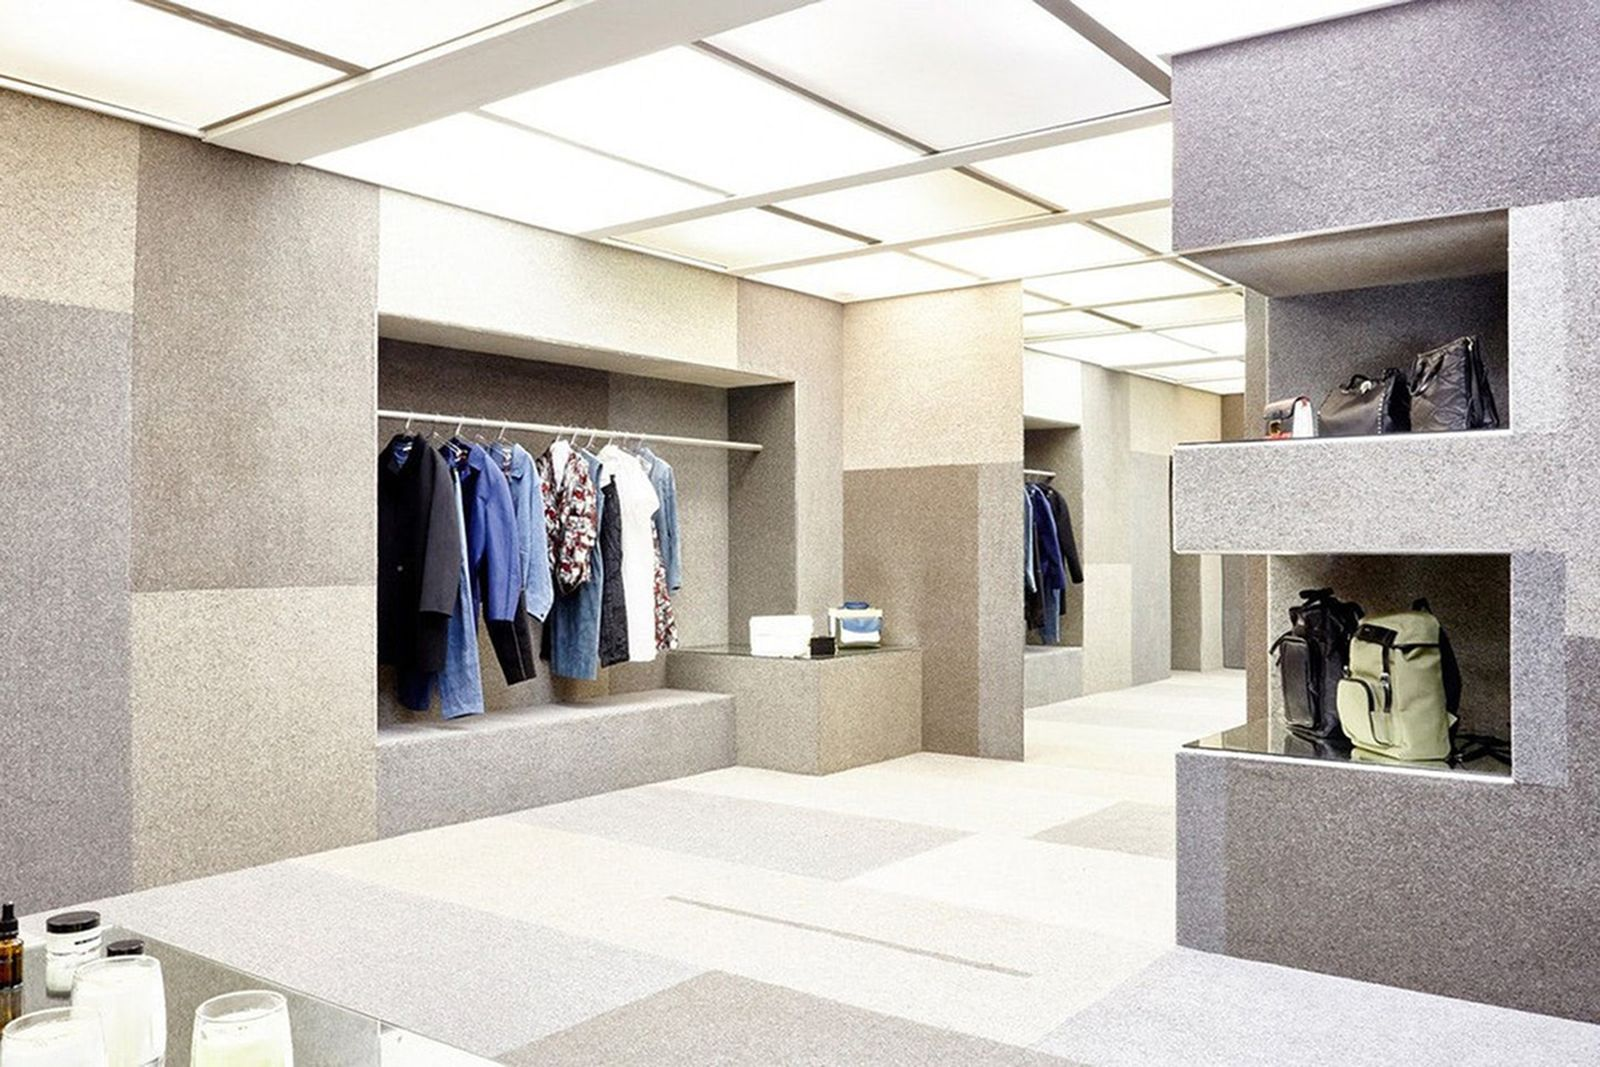 game-changers-best-store-interiors-changed-fashion-ln-cc-new